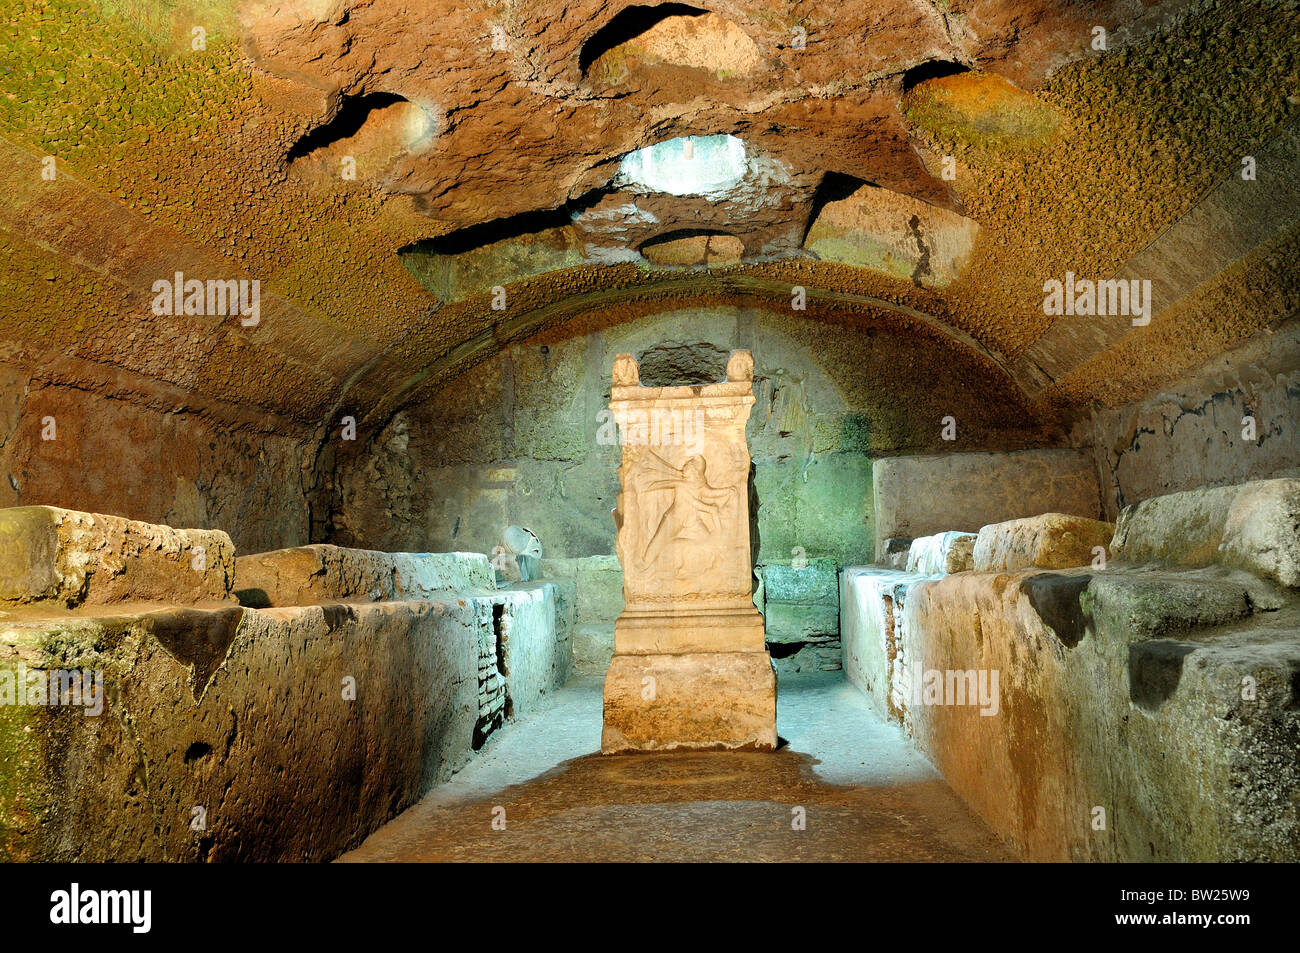 Altar of Mithras within the Triclinium, The Mithraic area, Basilica San Clemente - Stock Image